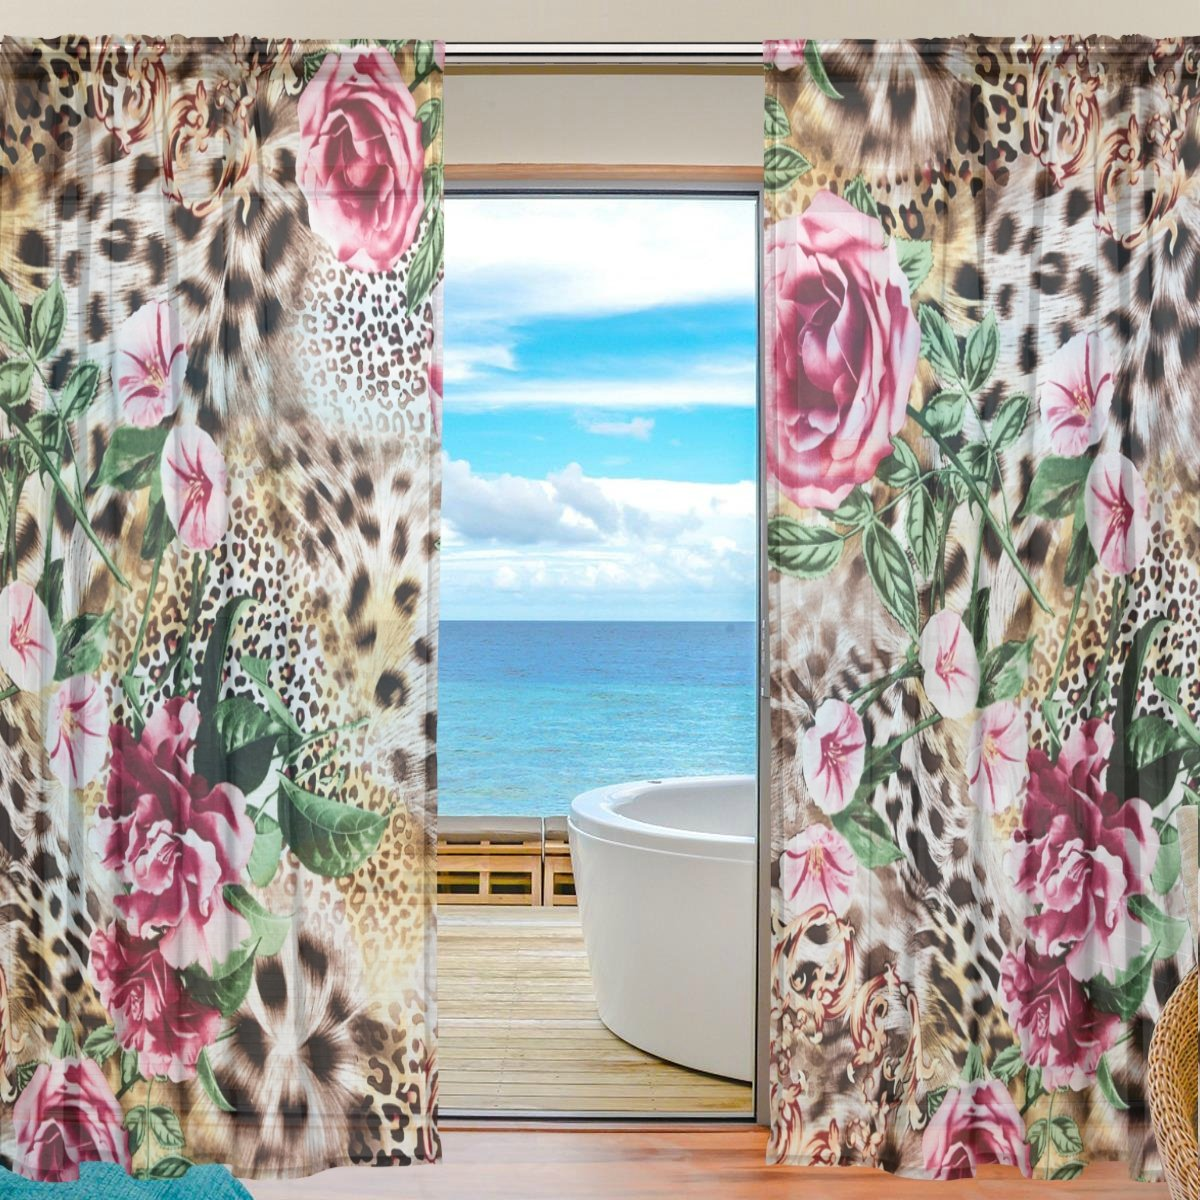 SEULIFE Window Sheer Curtain, Animal Tiger Leopard Print Flower Voile Curtain Drapes for Door Kitchen Living Room Bedroom 55x78 inches 2 Panels by SEULIFE